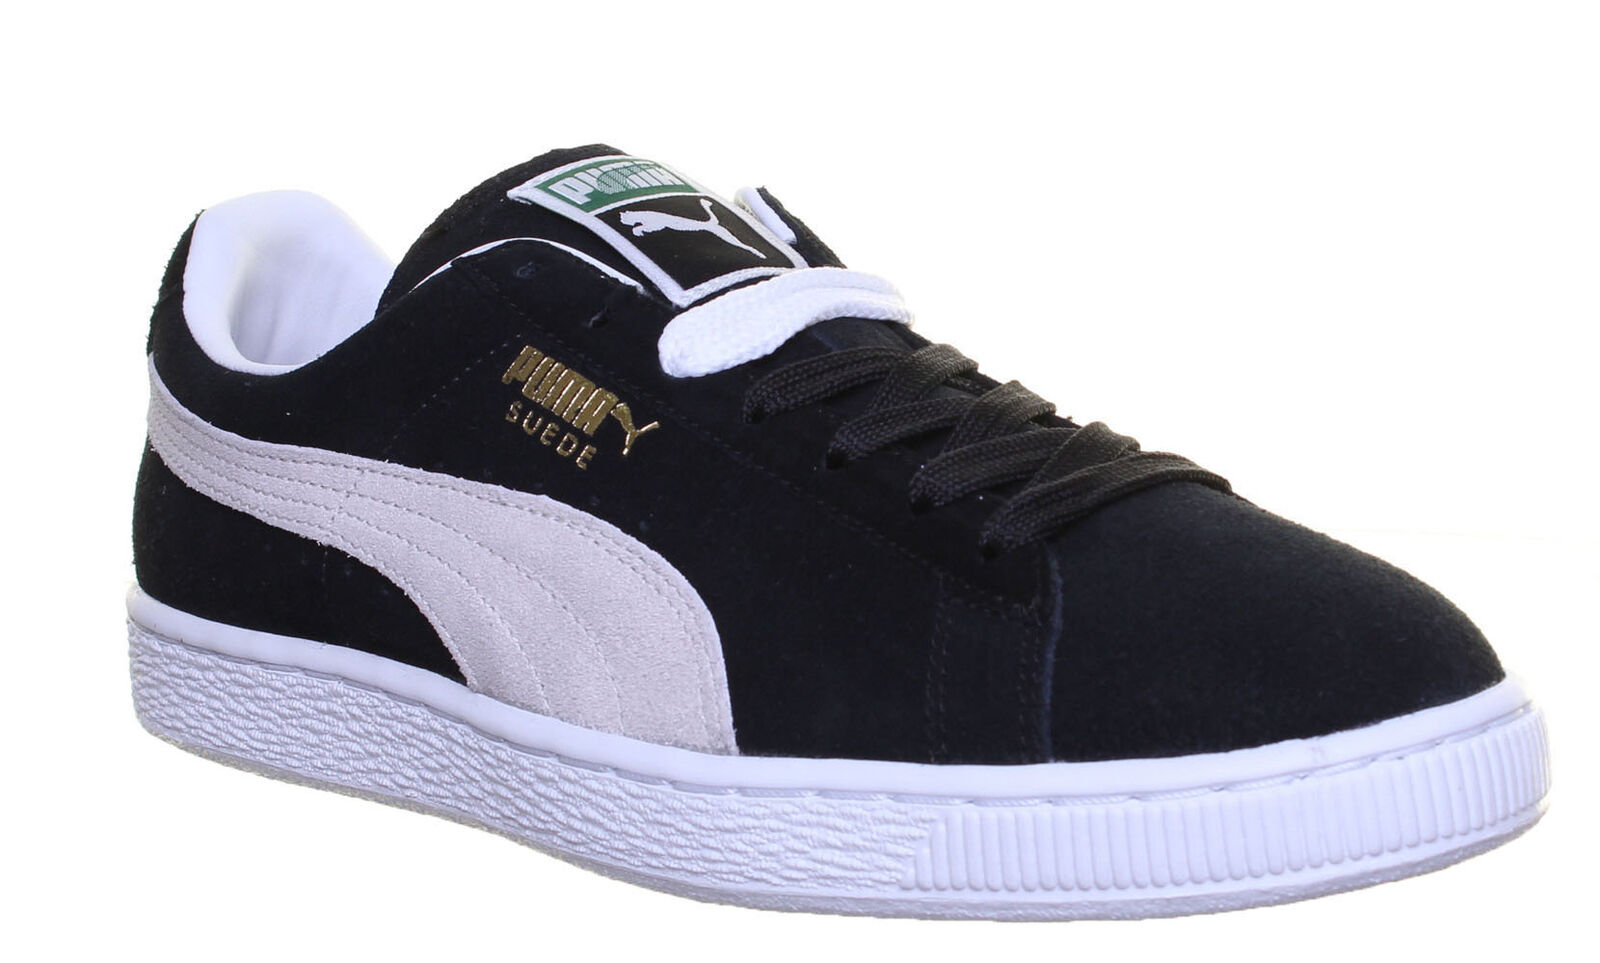 Details about Brand new Puma Suede Classic 'Winterized' Red with black sole